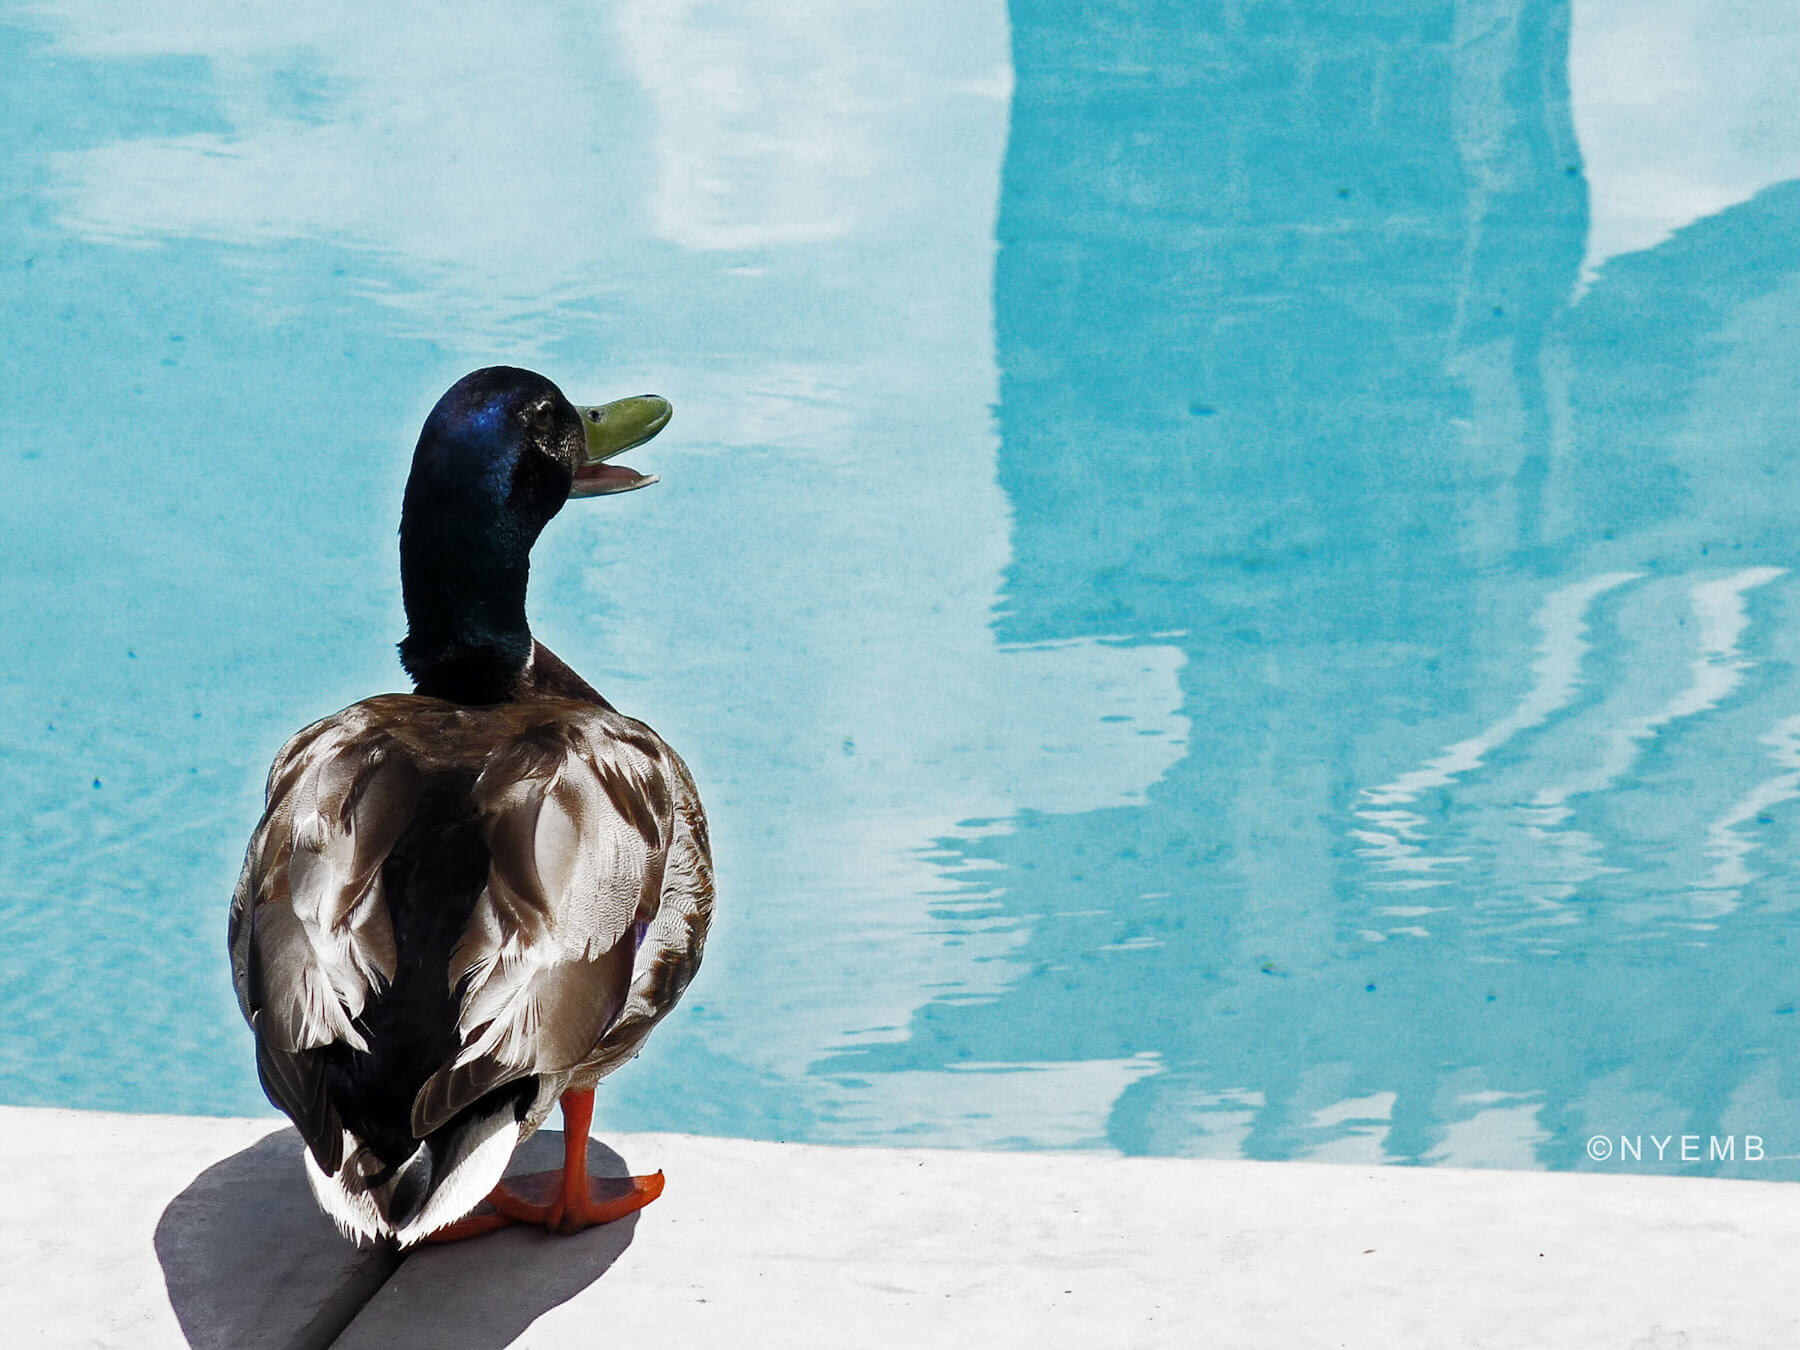 Tips and Tricks to Keep Ducks and Geese Out of Your Pool